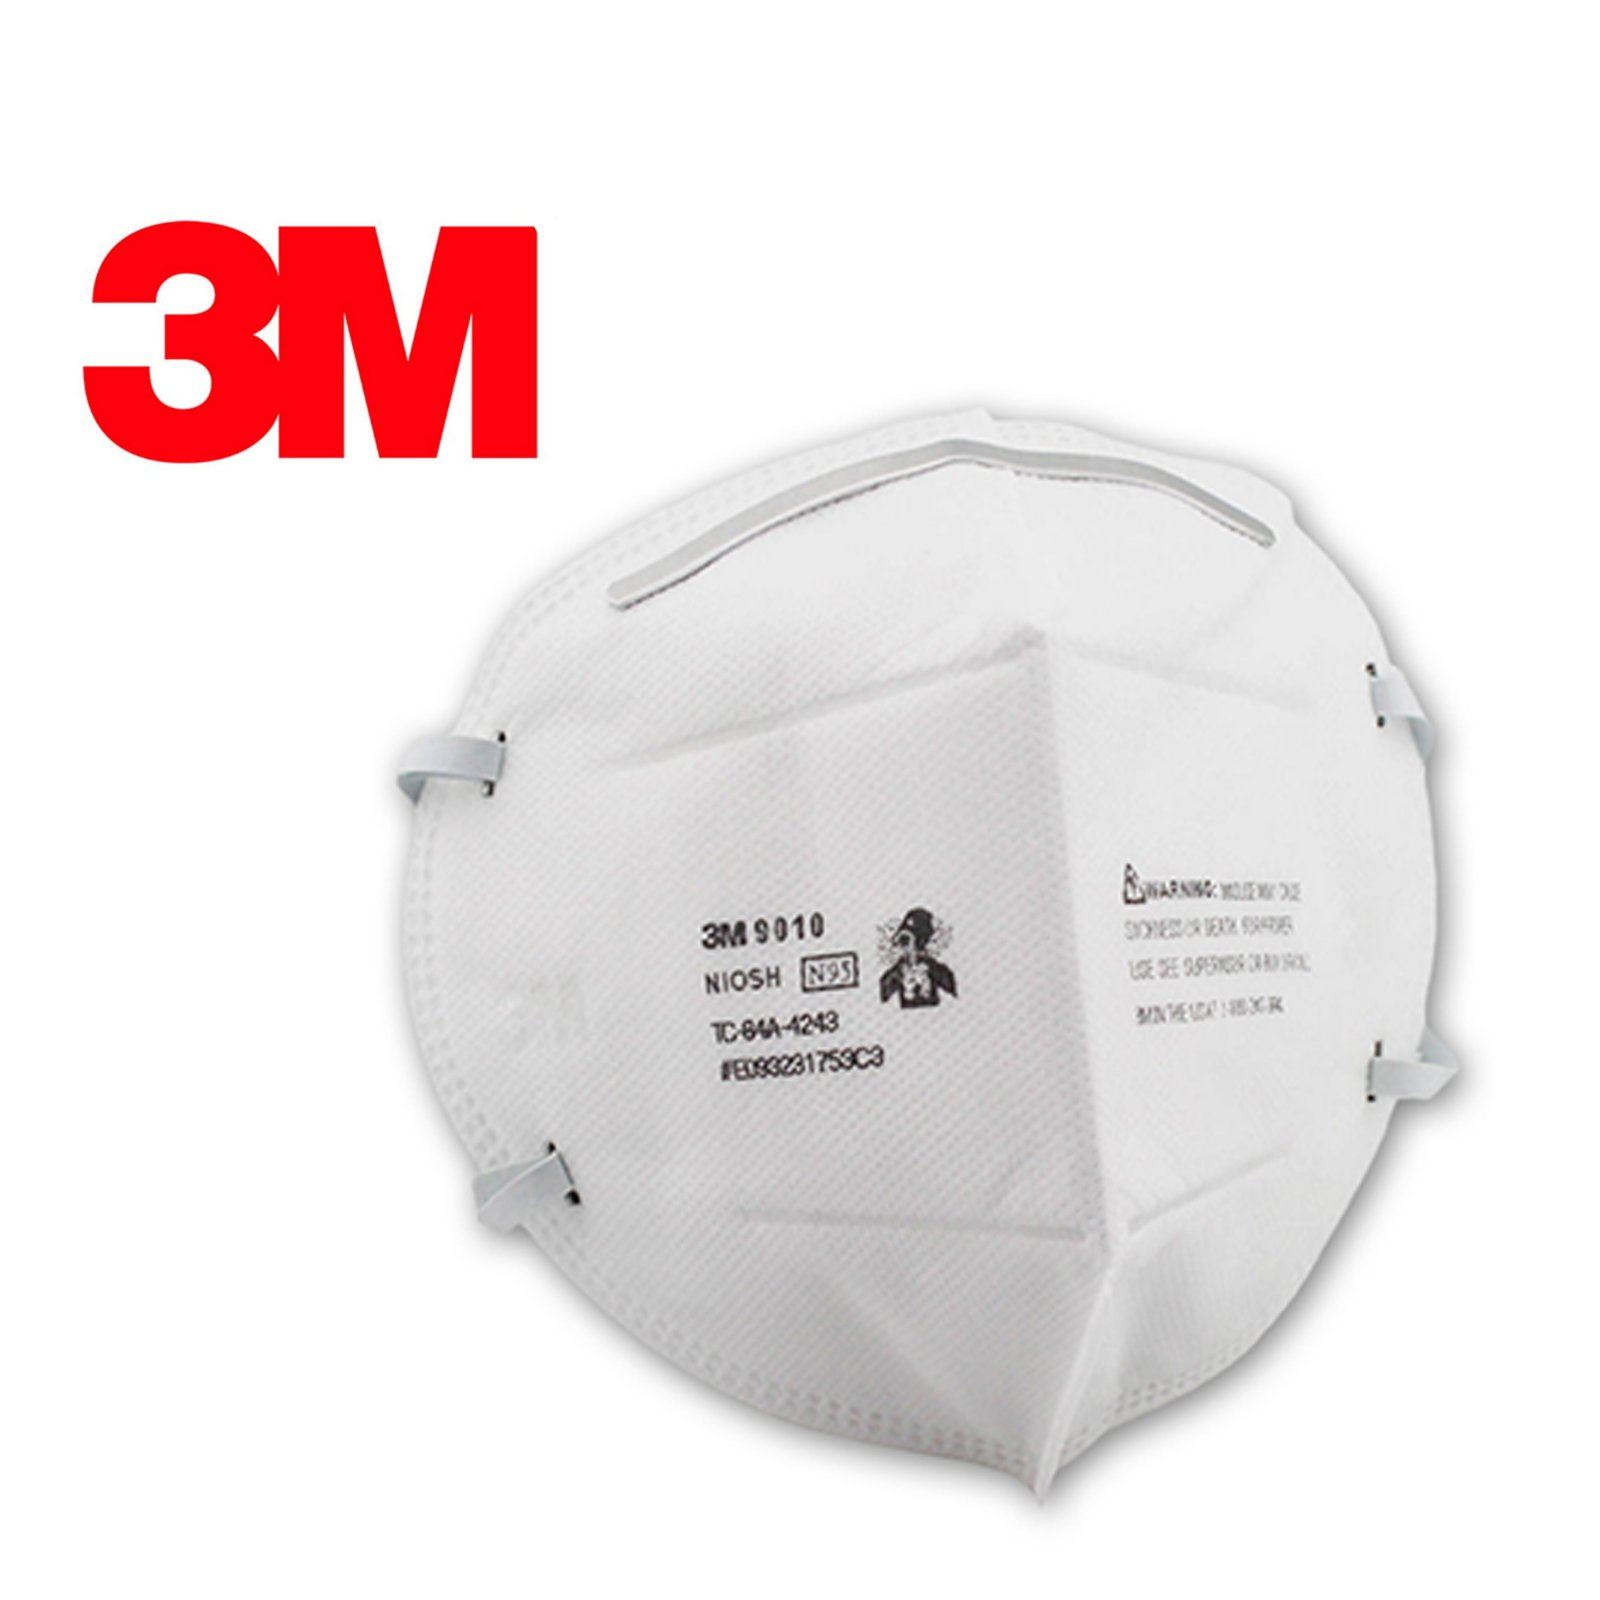 3M 9010 N95 Face Mask